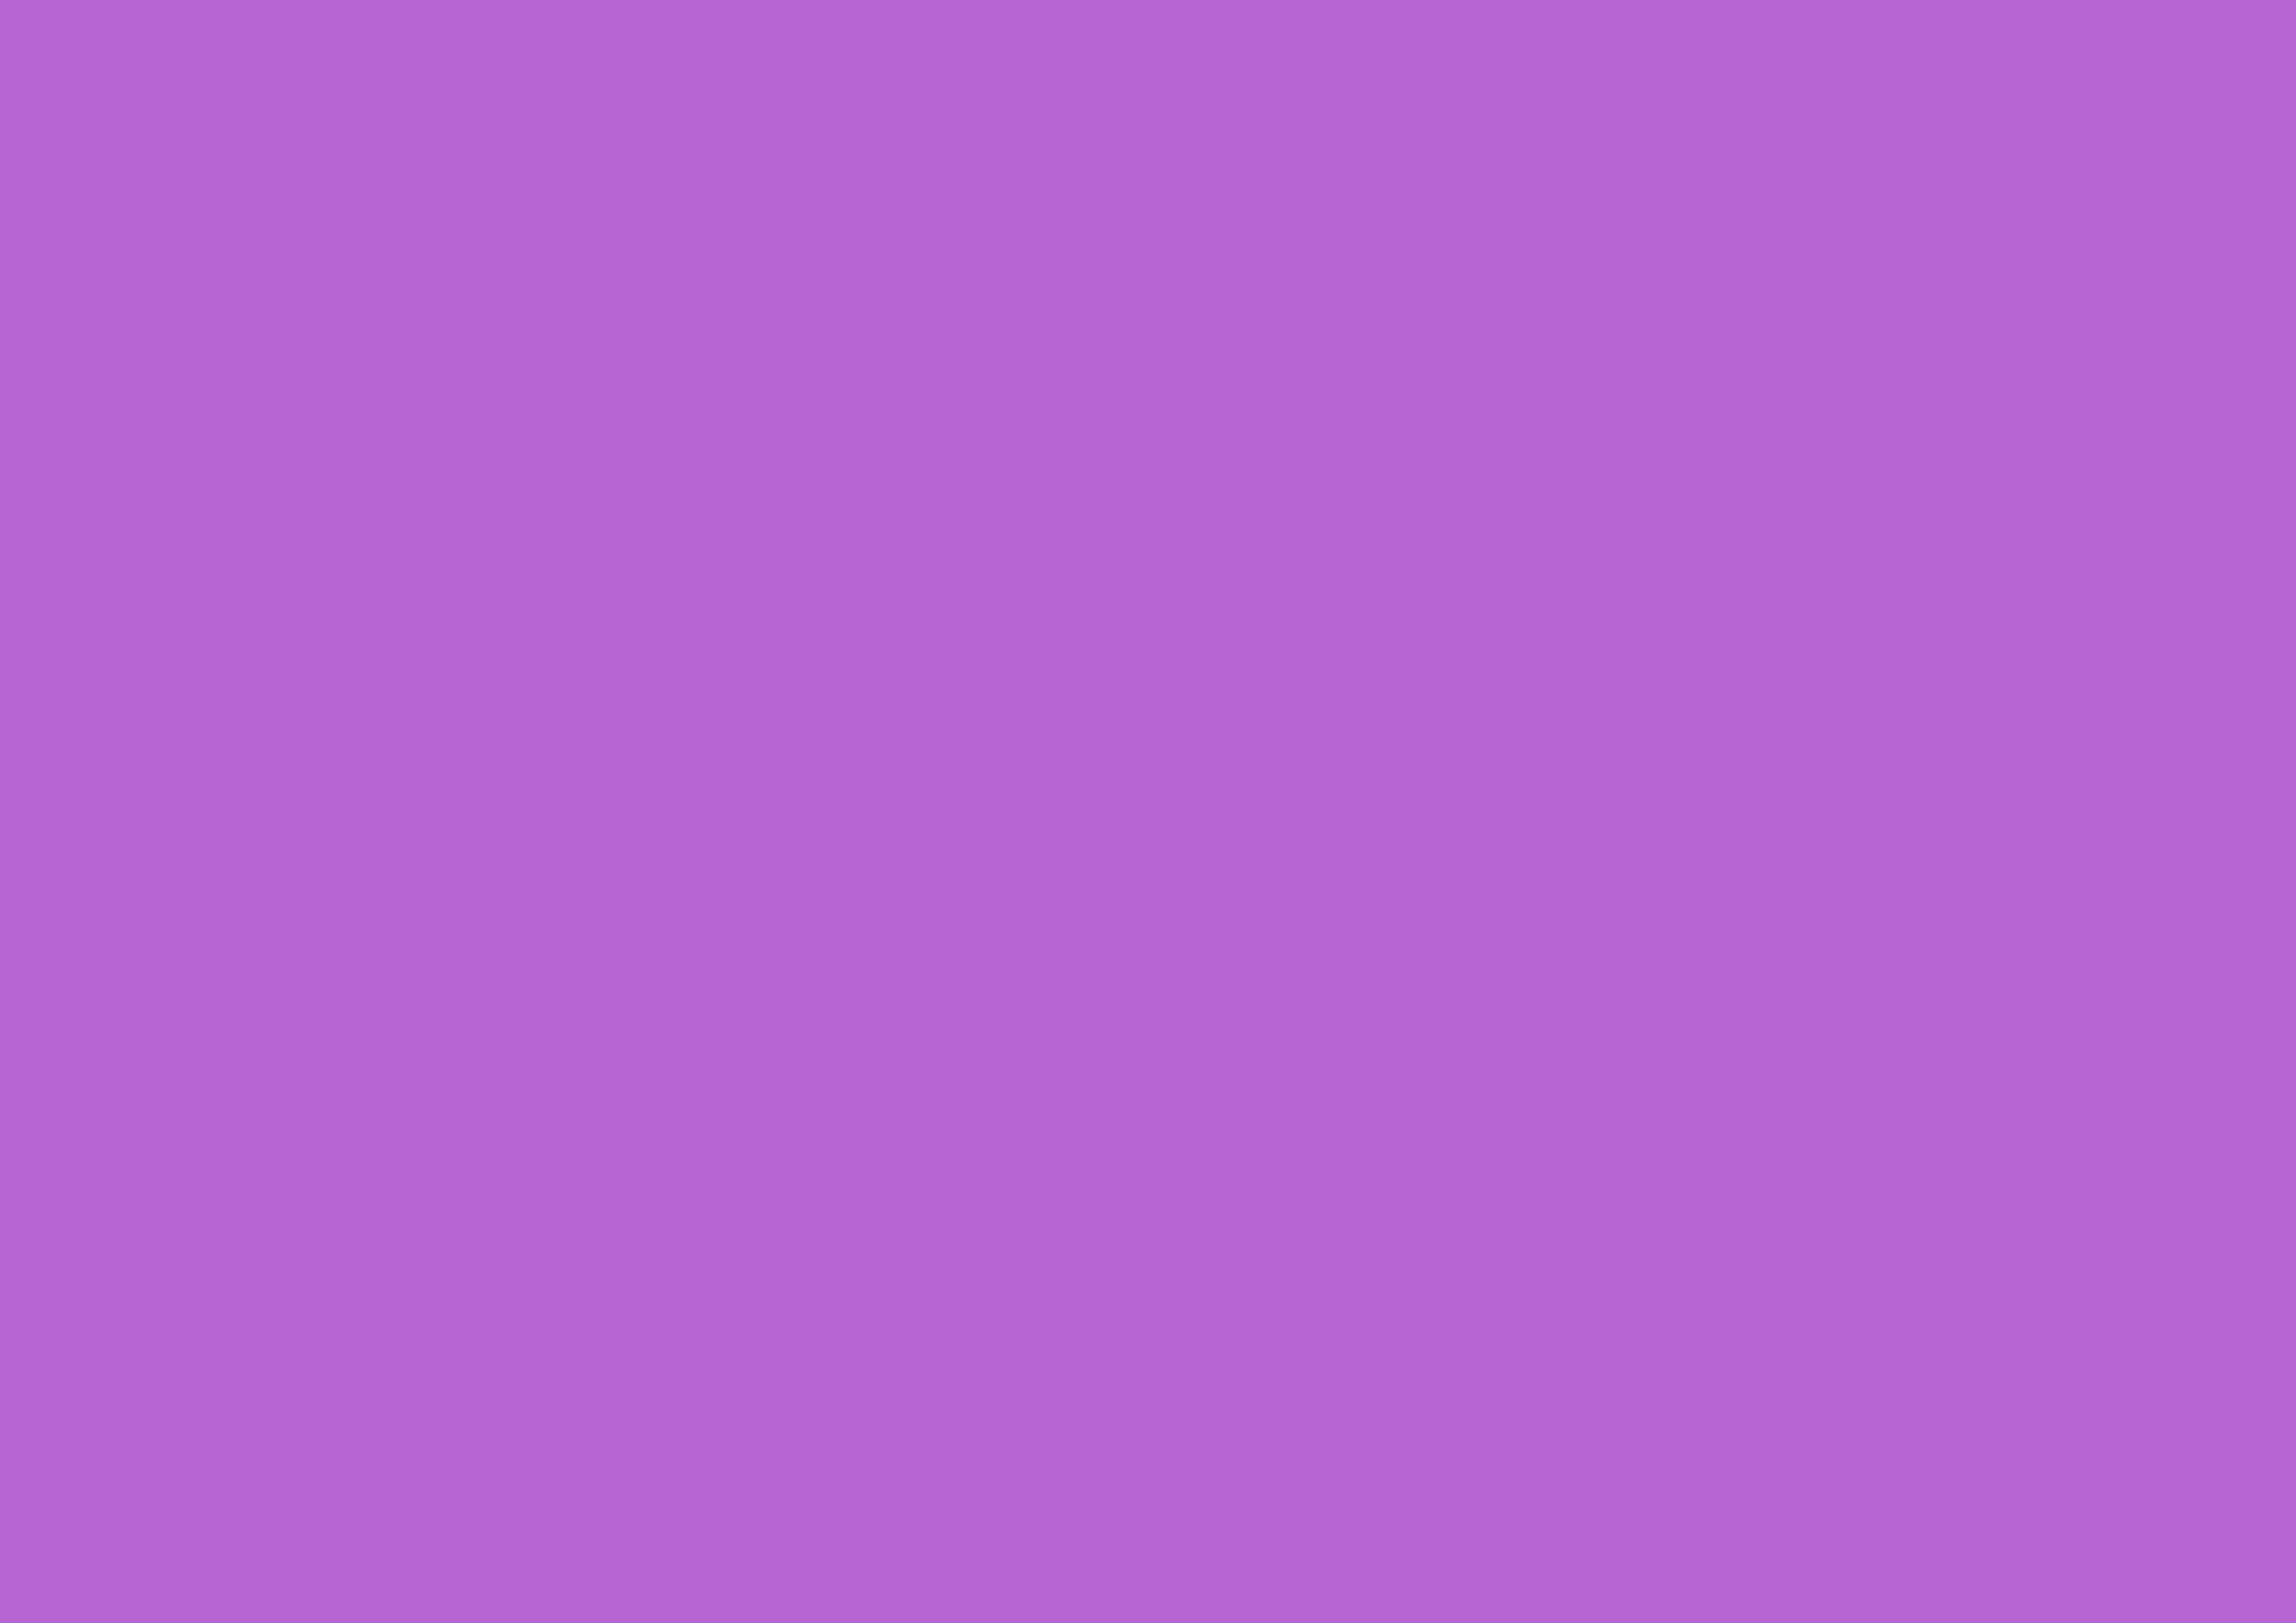 3508x2480 Rich Lilac Solid Color Background